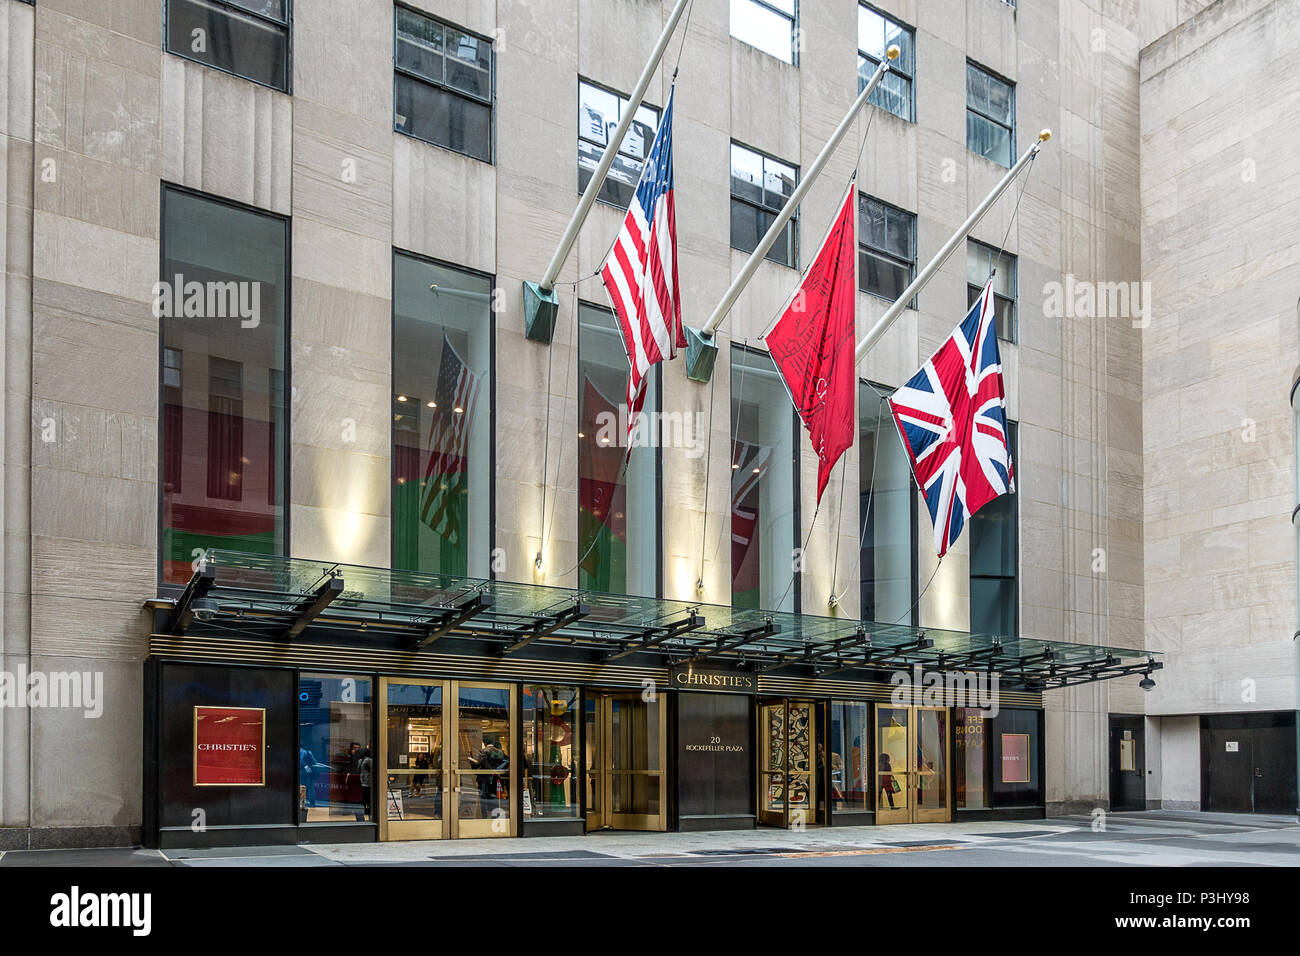 Christies auctioners in New York - Stock Image